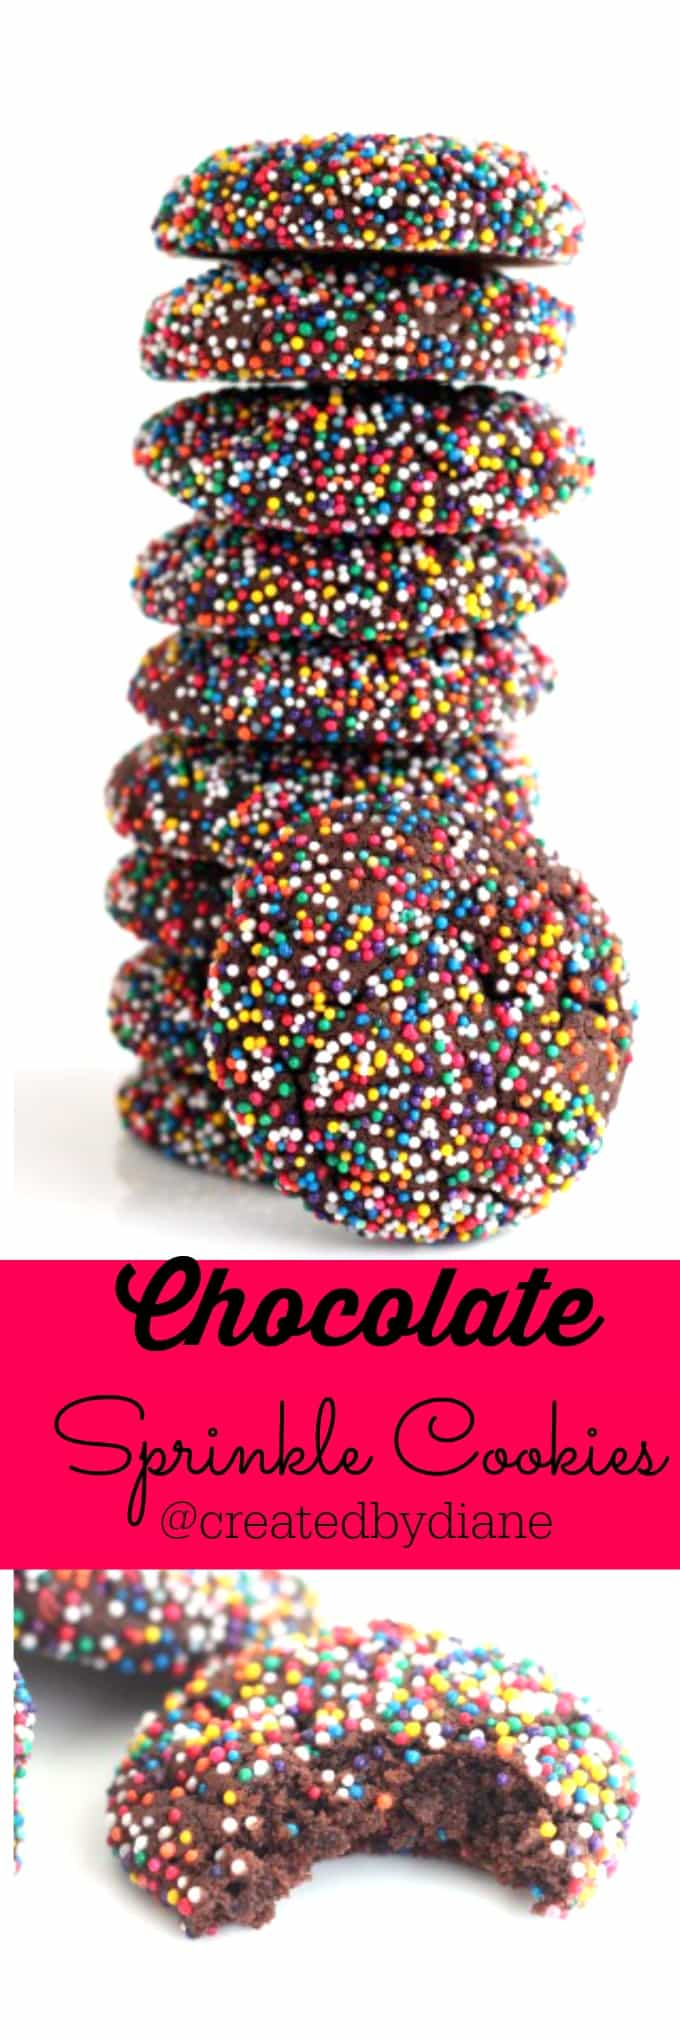 Chocolate Sprinkle Cookies @createdbydiane